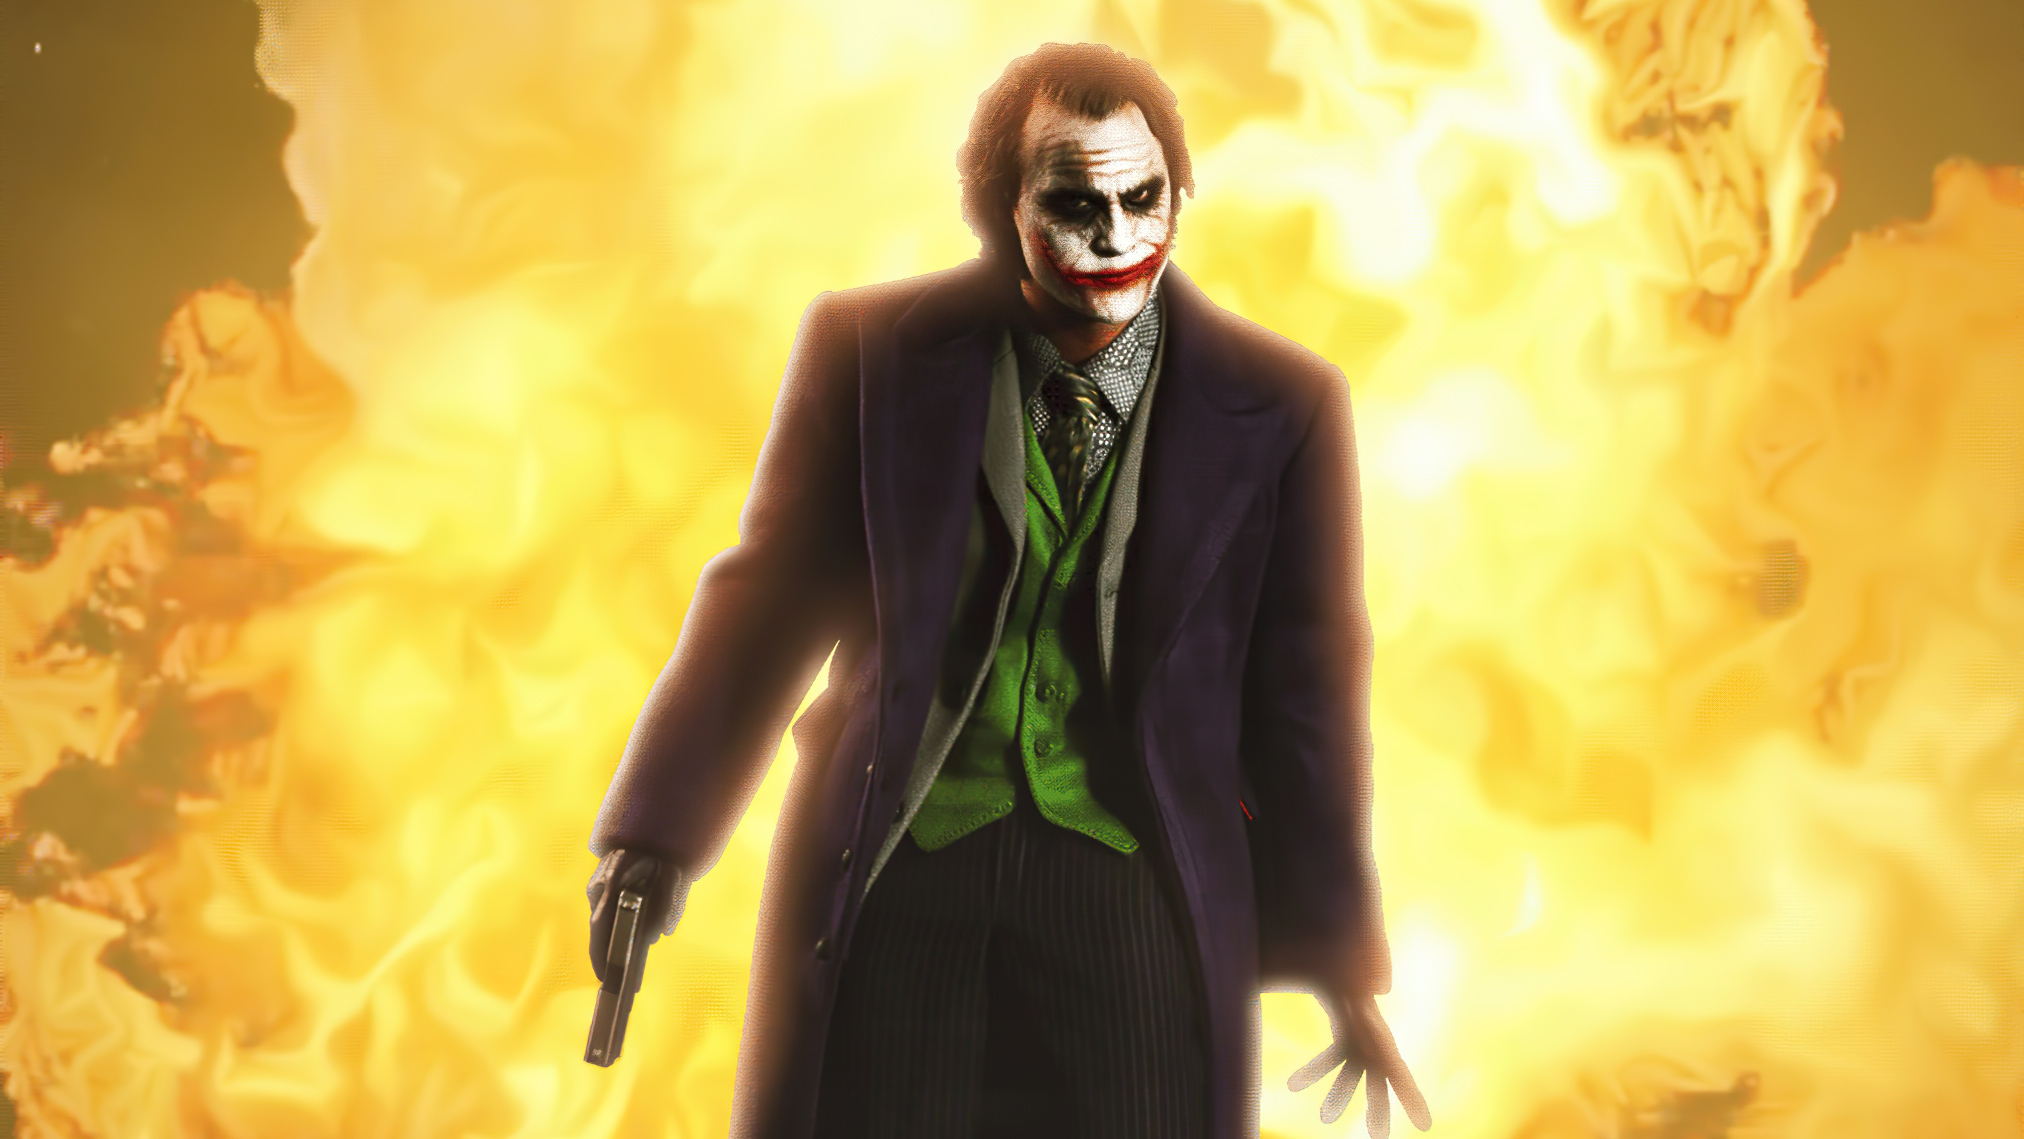 2020 Joker New Hd Superheroes 4k Wallpapers Images Backgrounds Photos And Pictures